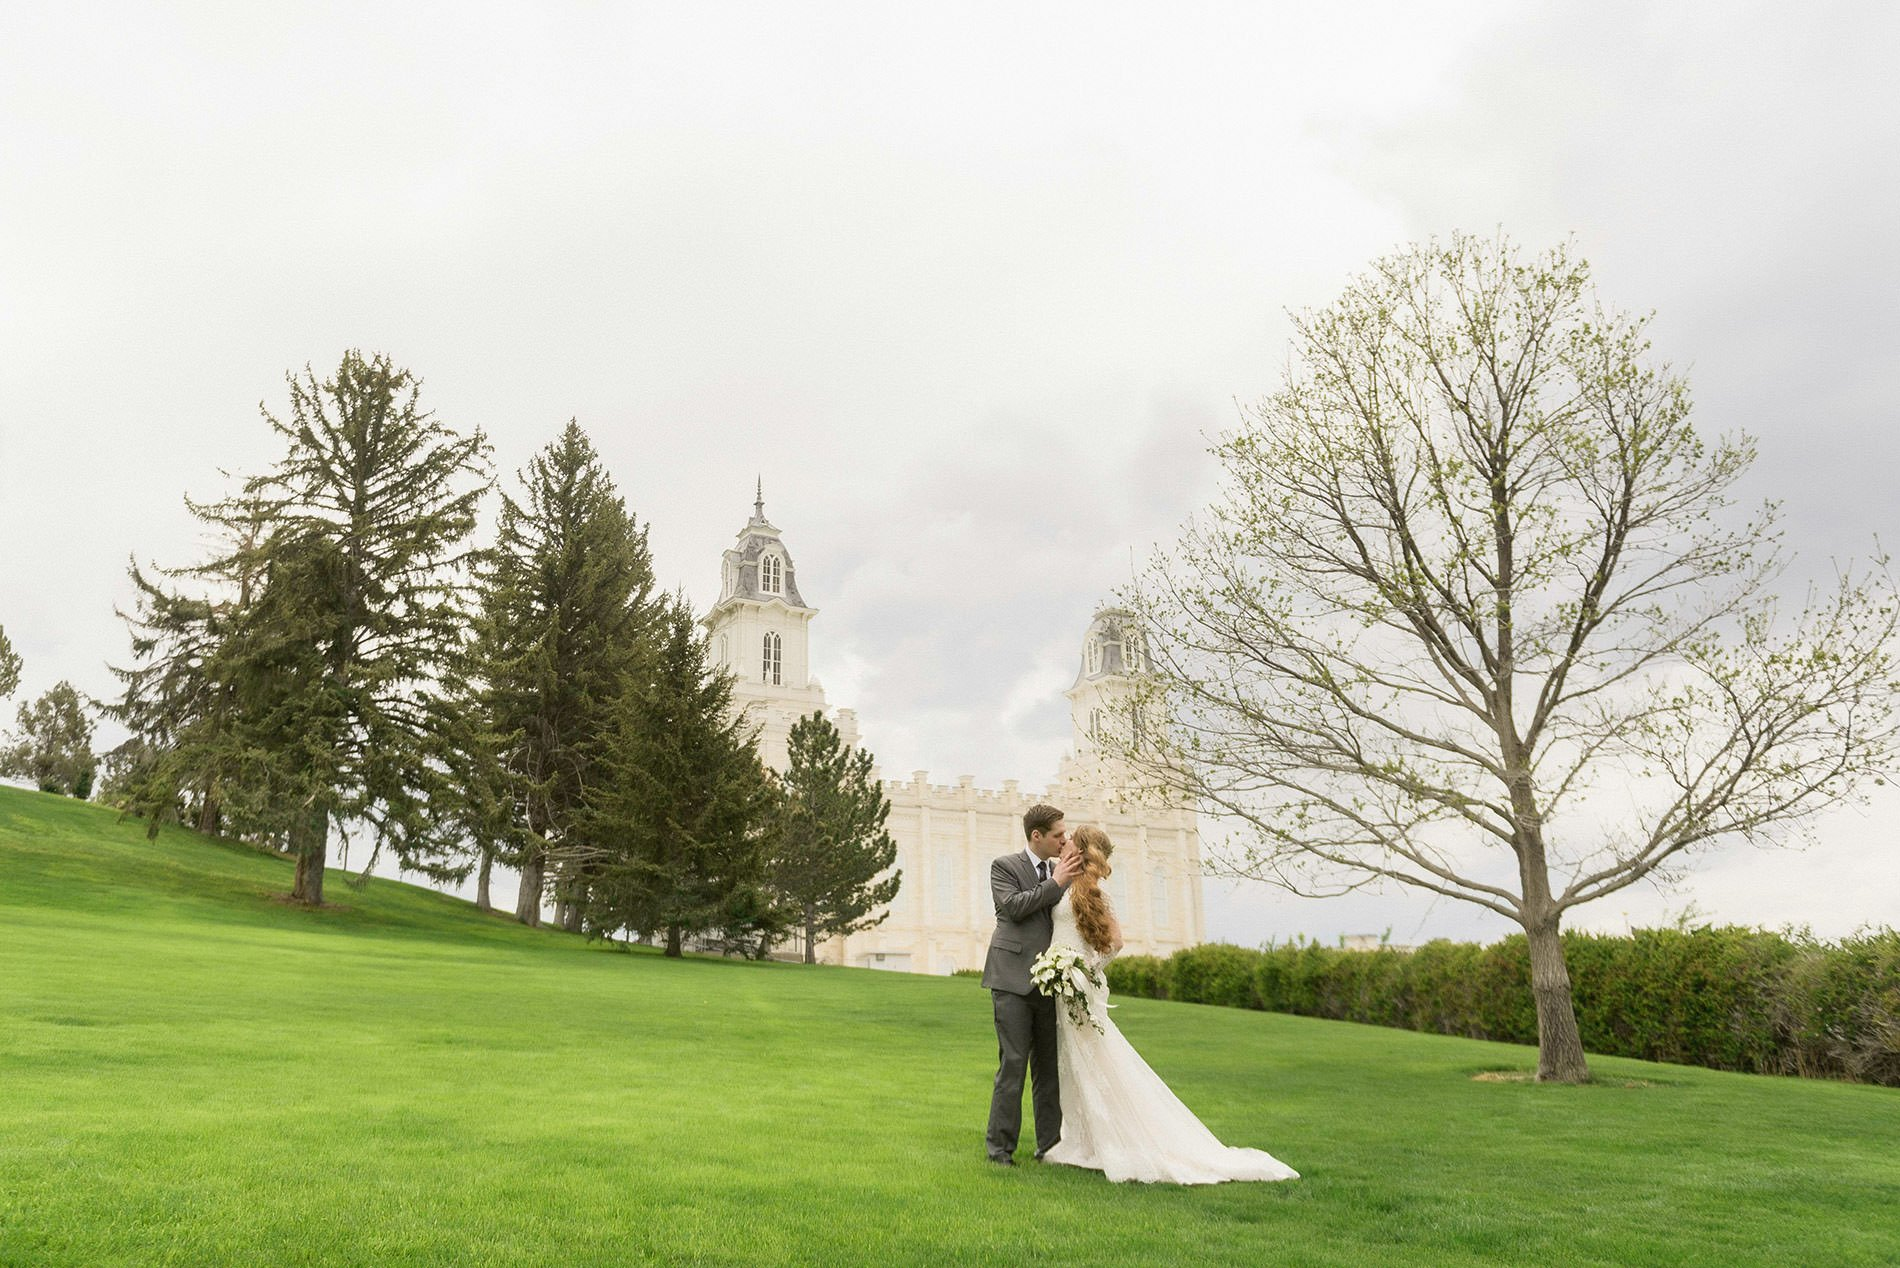 A groom touches his brides face and kisses her for Manti temple wedding photography.